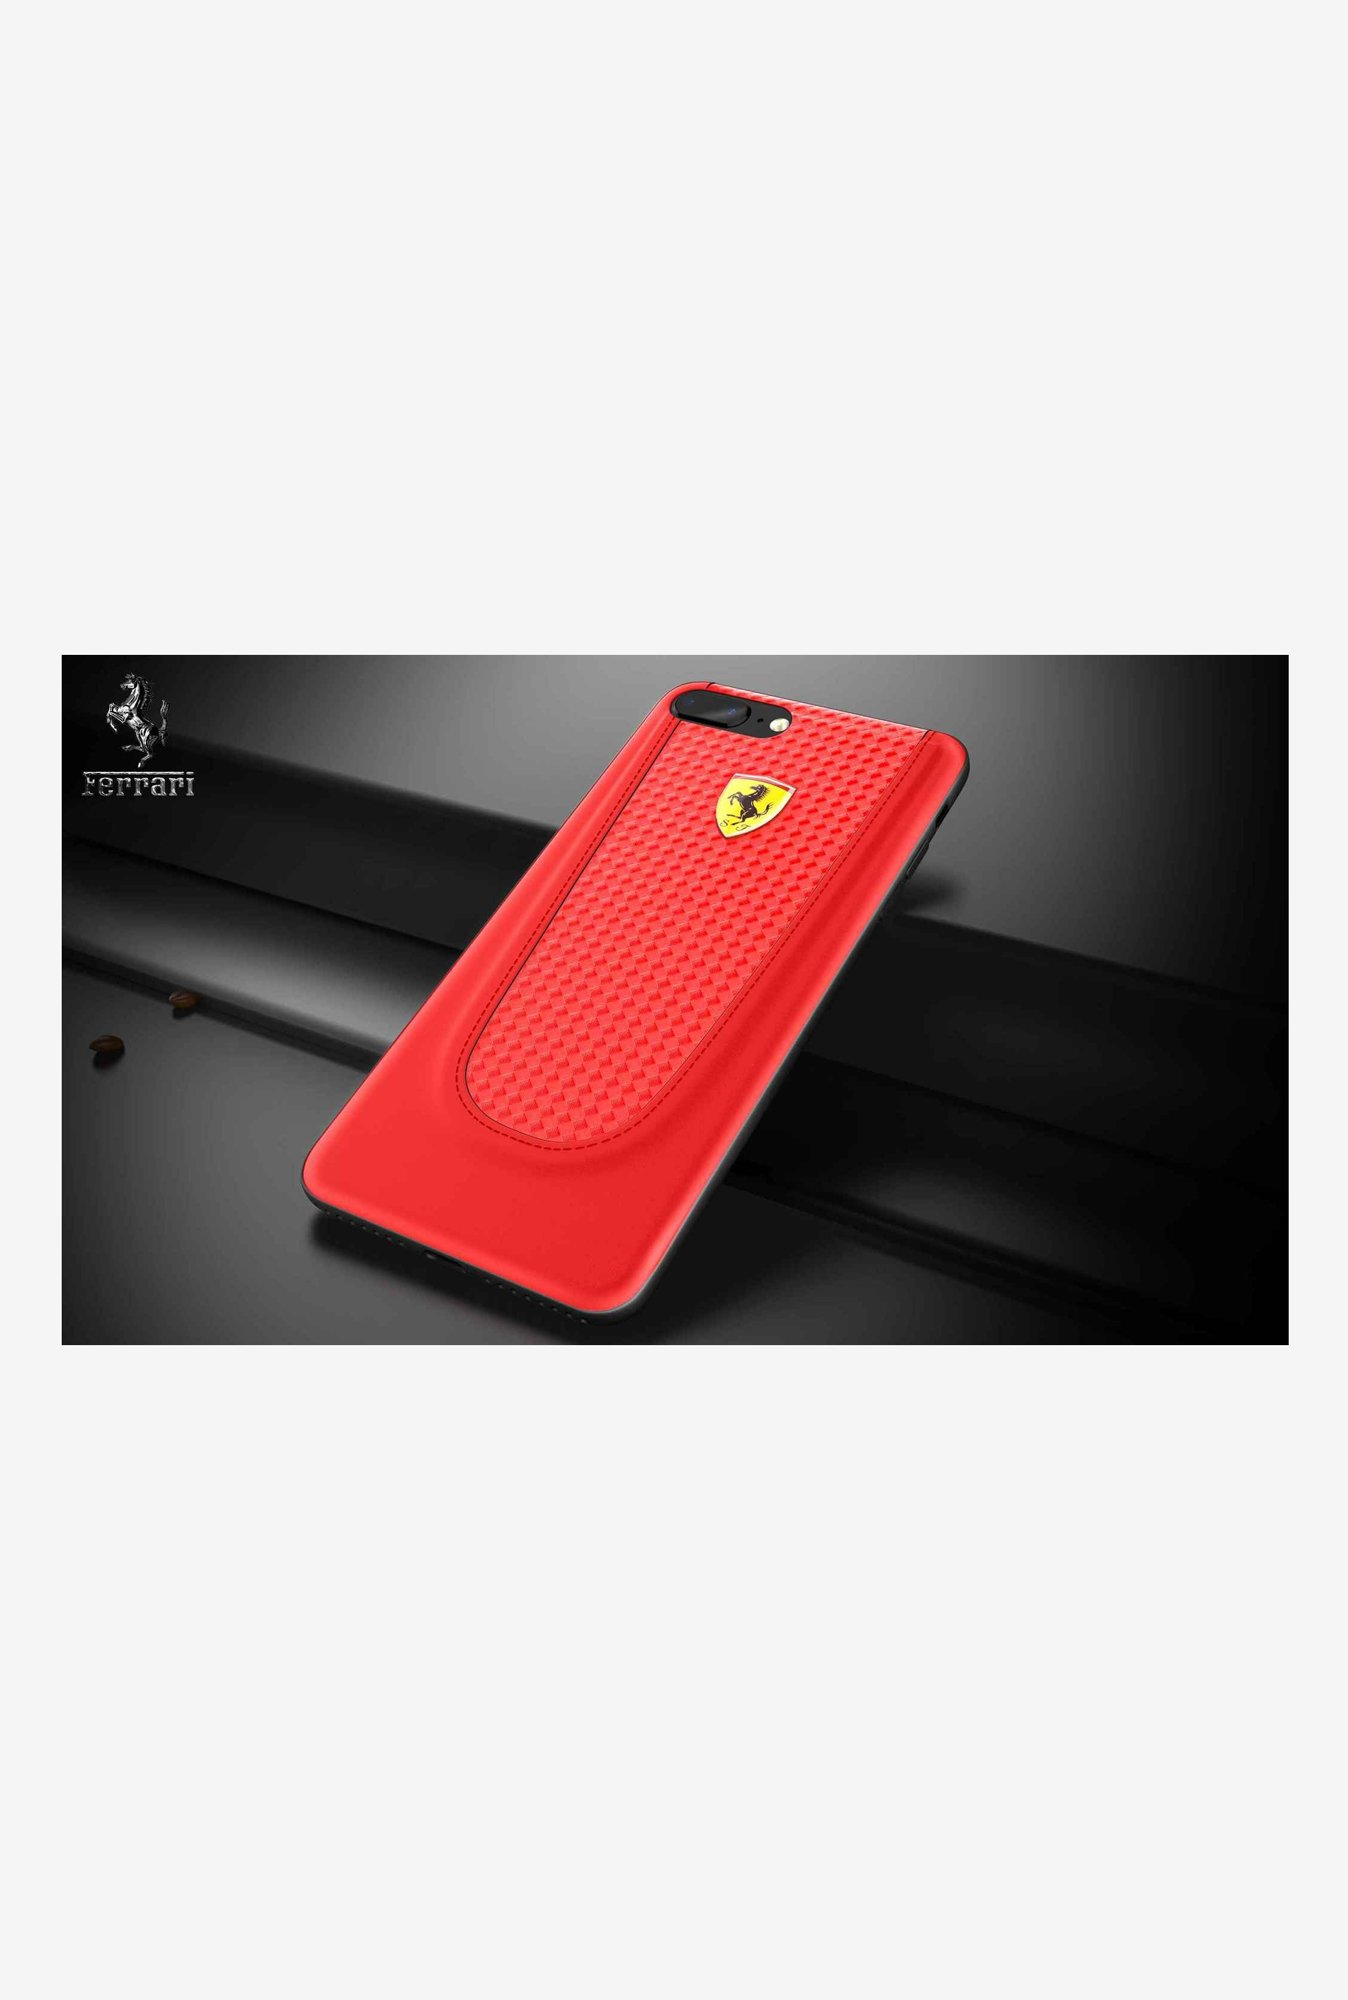 separation shoes 222b1 3f593 Buy Ferrari Leather Back Cover For iPhone 7 Plus Online At Best Price @  Tata CLiQ